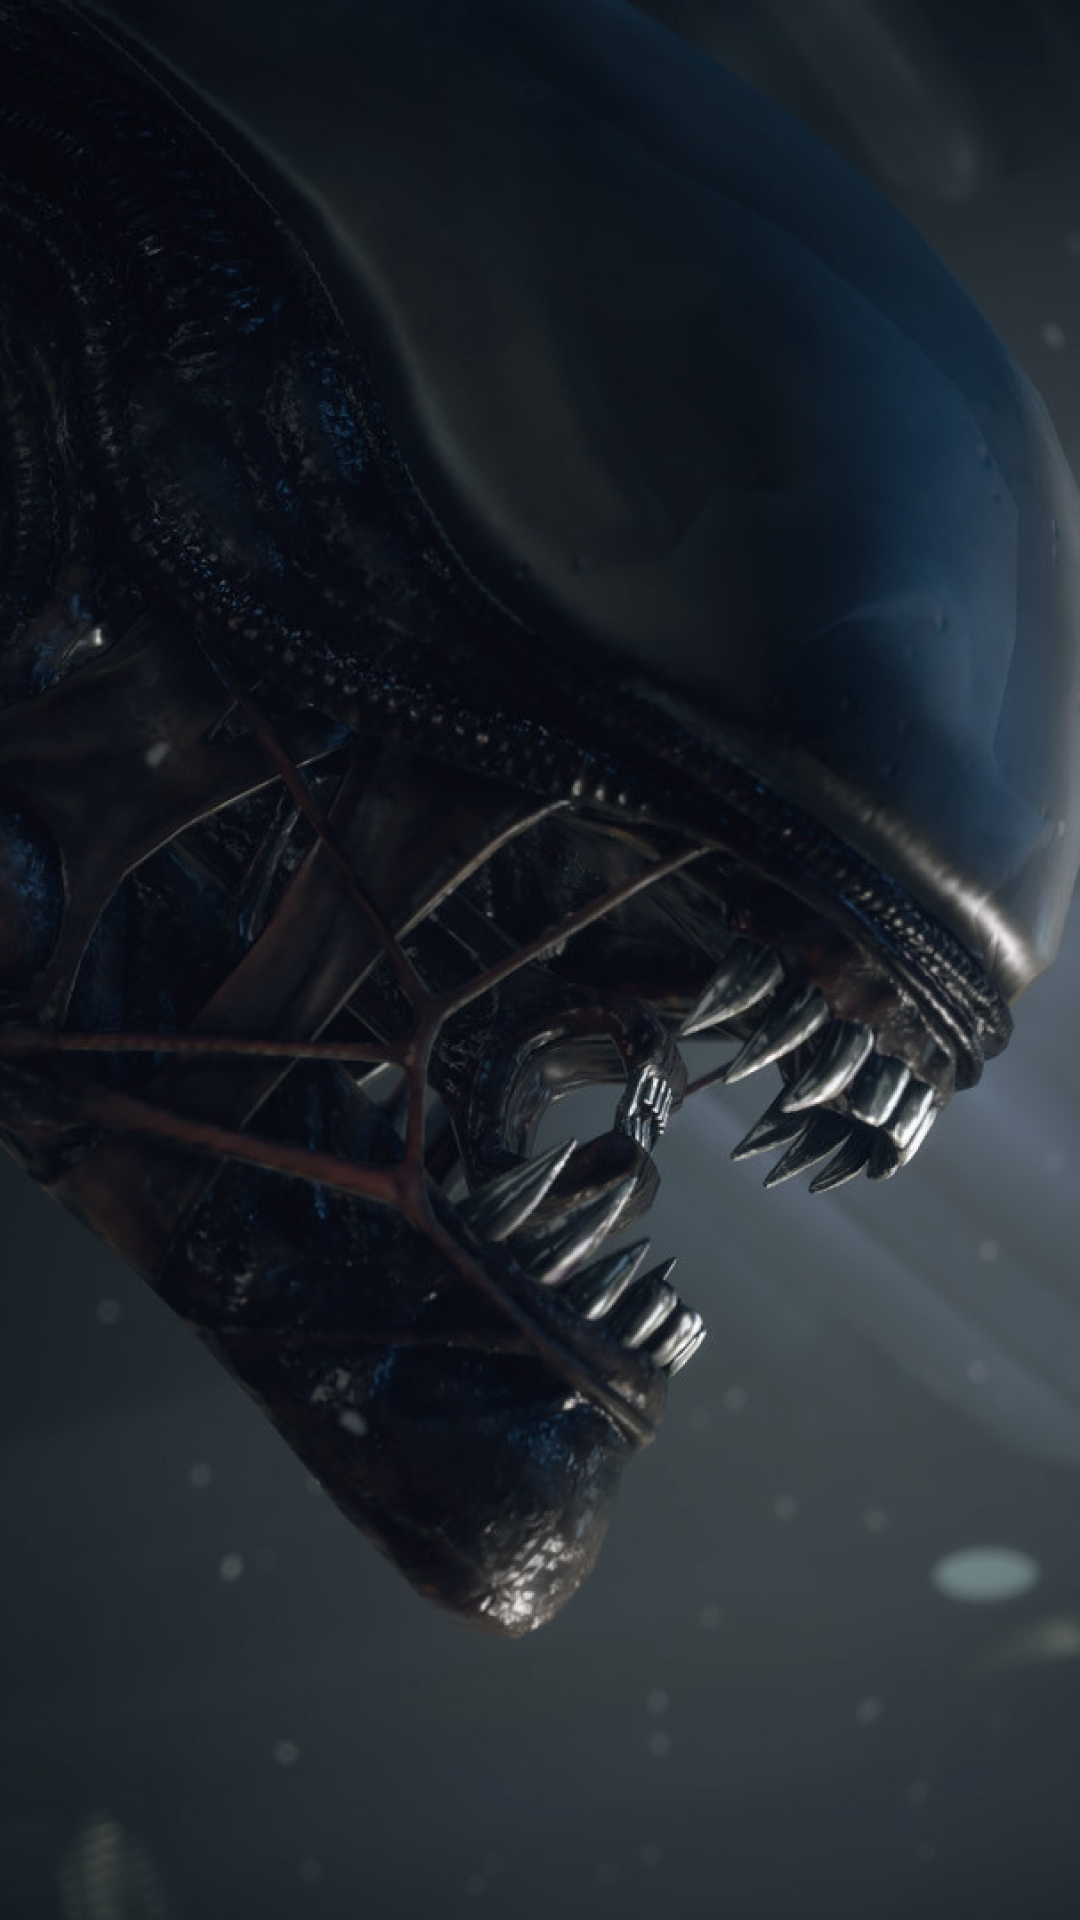 Wallpaper Alien Isolation Pc Playstation 3 Playstation エイリアン 壁紙 Iphone 640x1136 Download Hd Wallpaper Wallpapertip